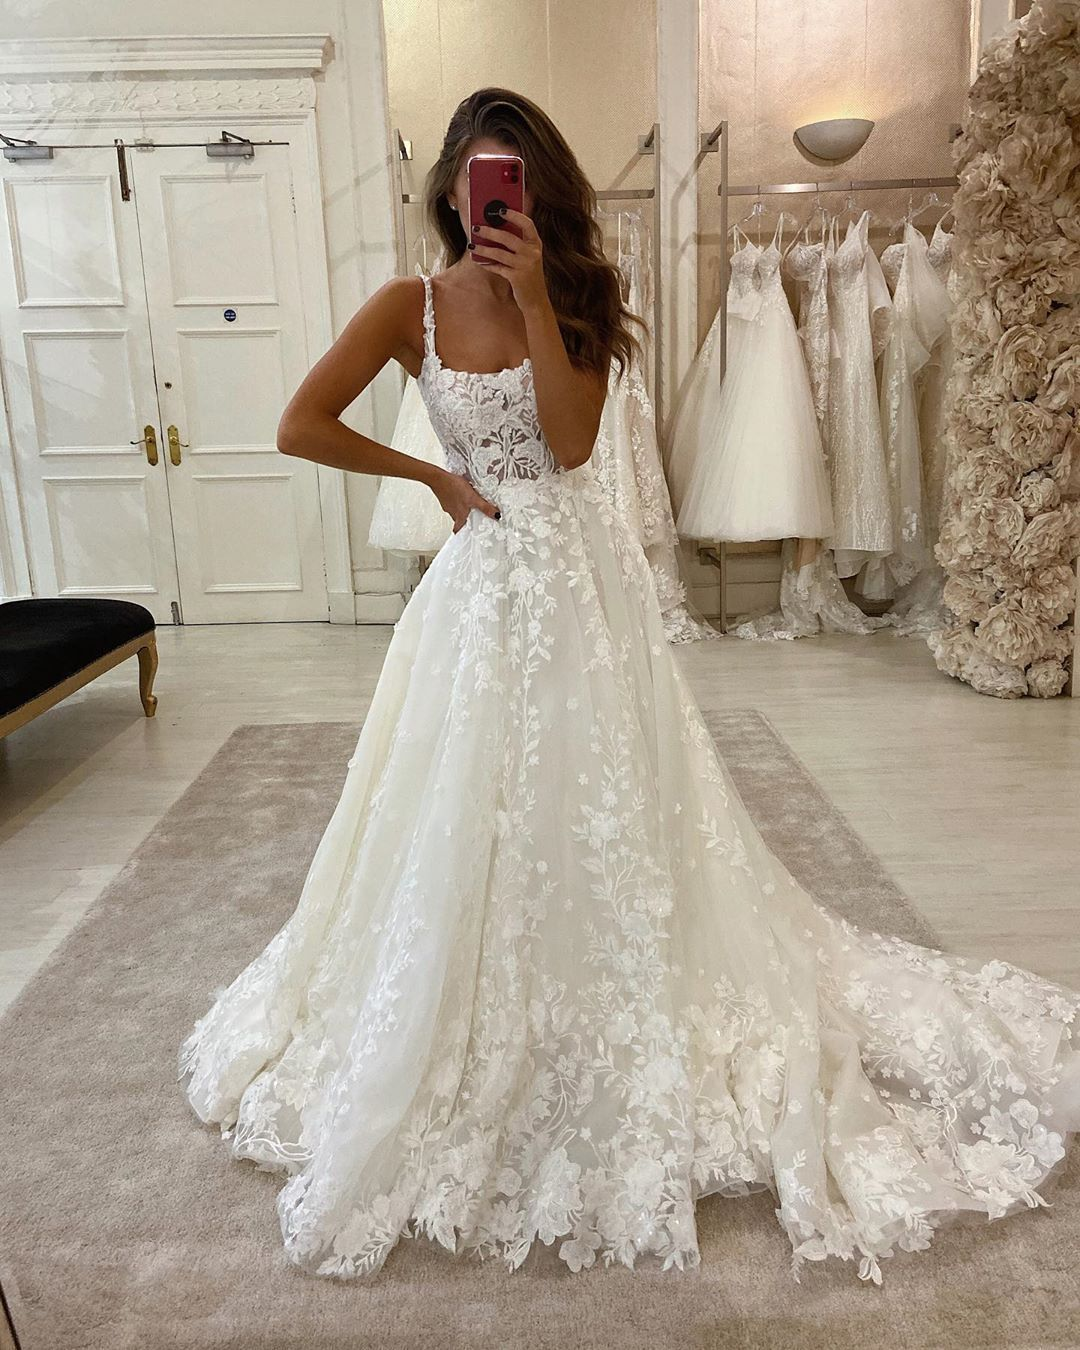 Eleganza Sposa On Instagram Trunk Show Preview We Are So Excited To Announce That Our S In 2020 Wedding Dresses Wedding Dresses Lace Ball Gowns Wedding